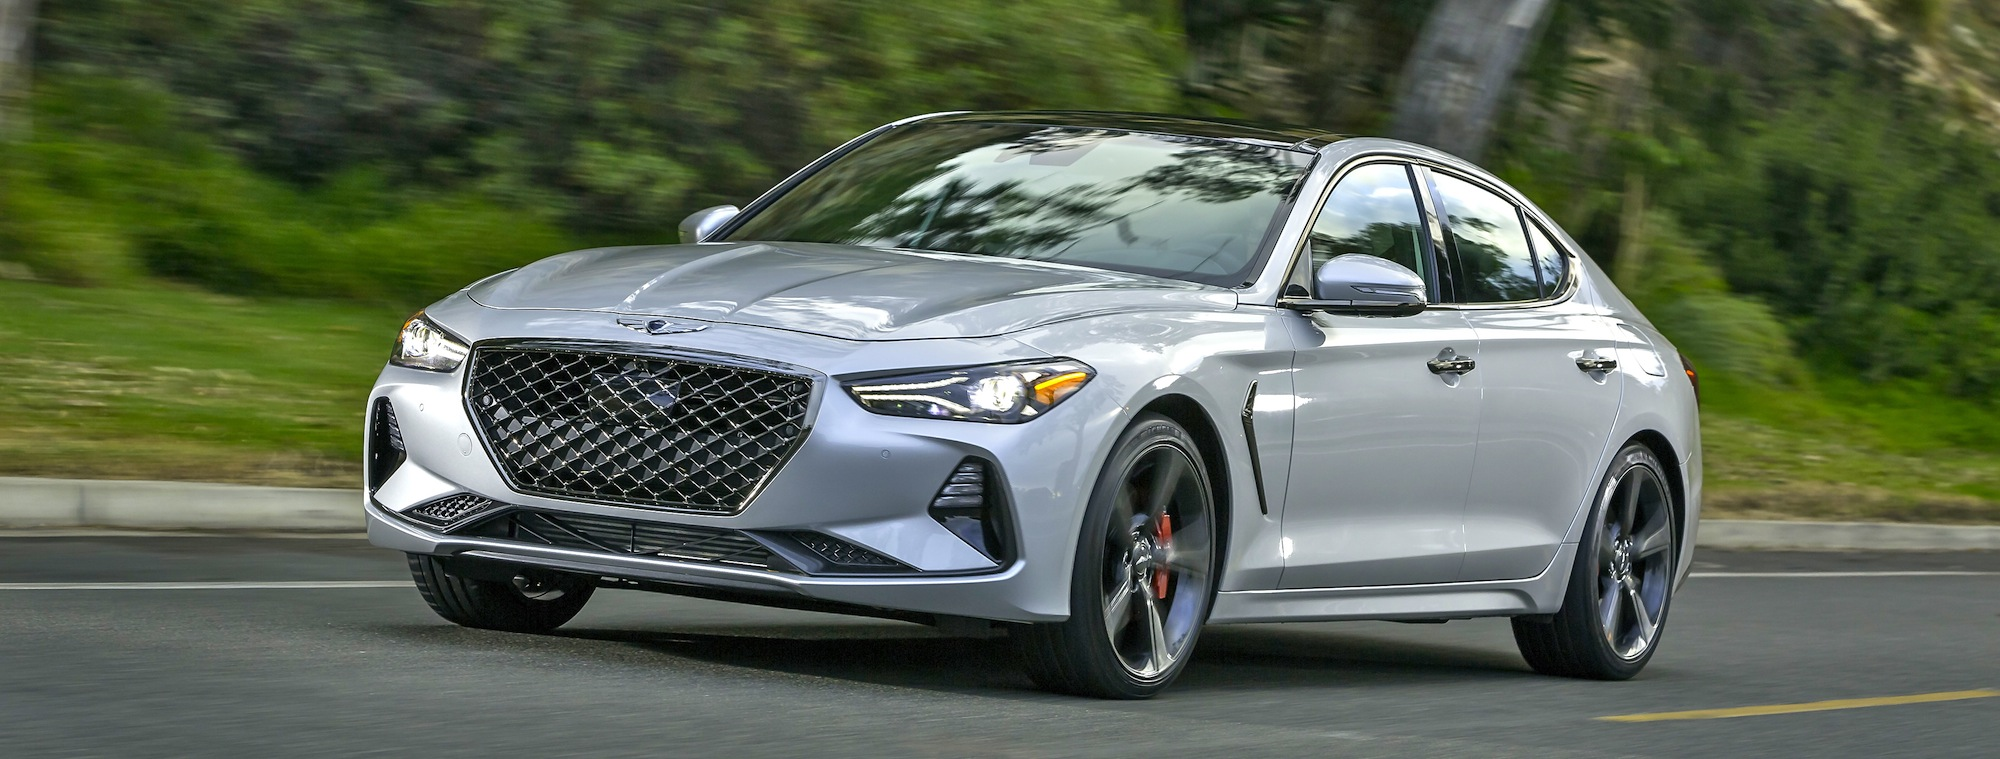 2019 Genesis G70: Korean Luxury, With Performance Direct From Germany